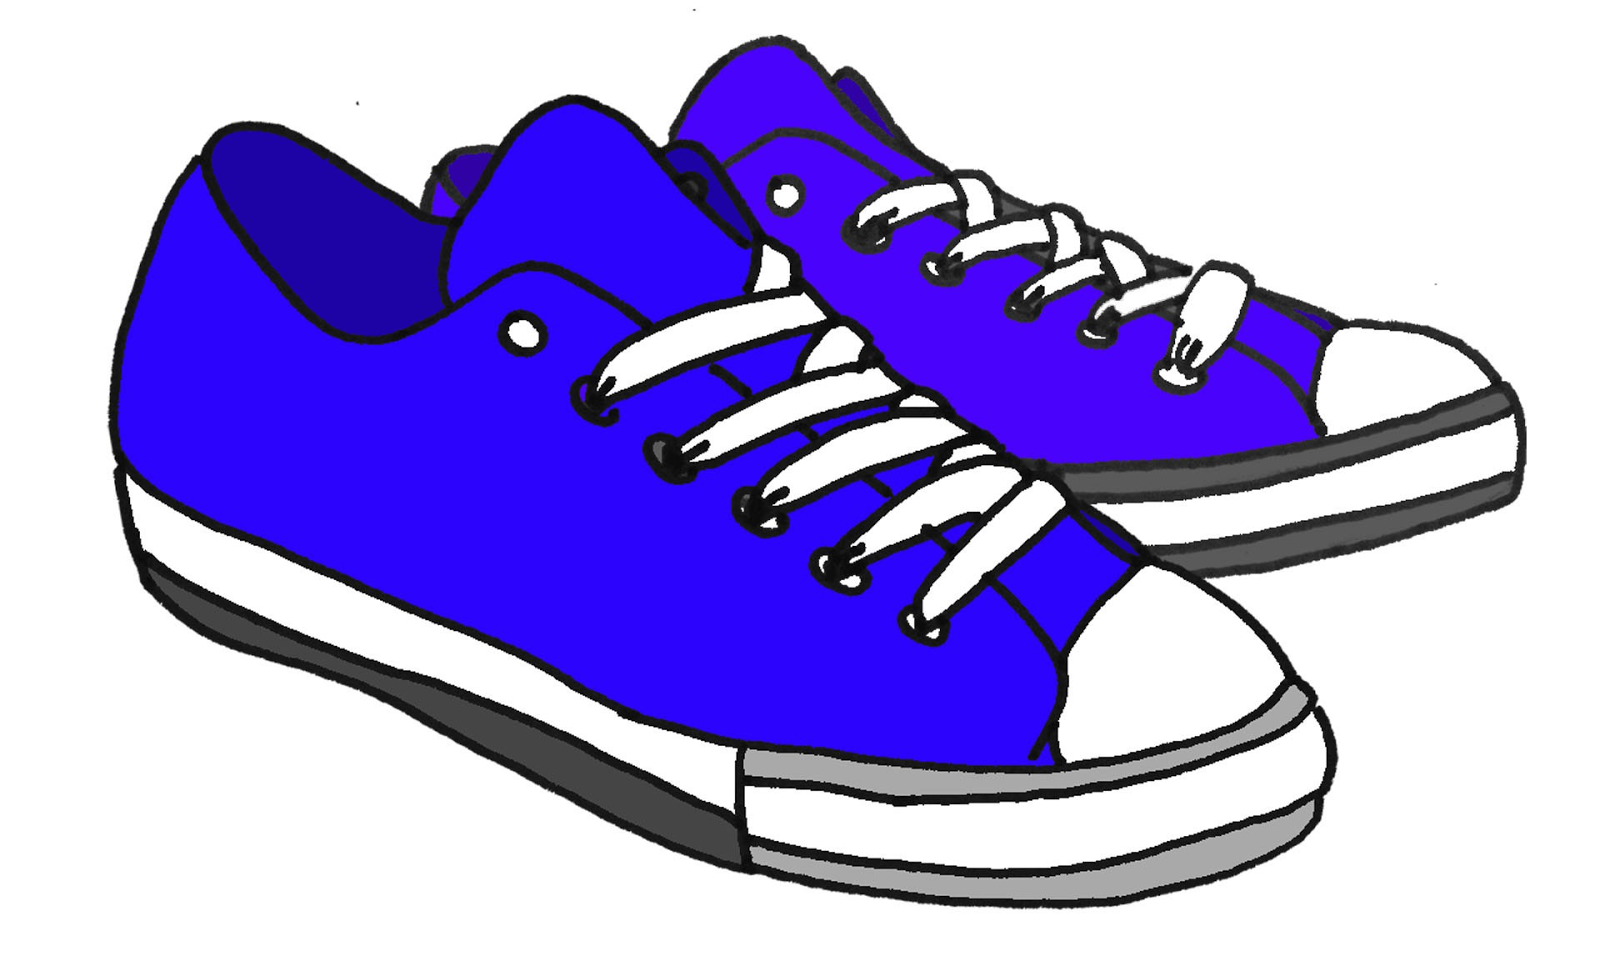 Gym-shoes clipart #3, Download drawings